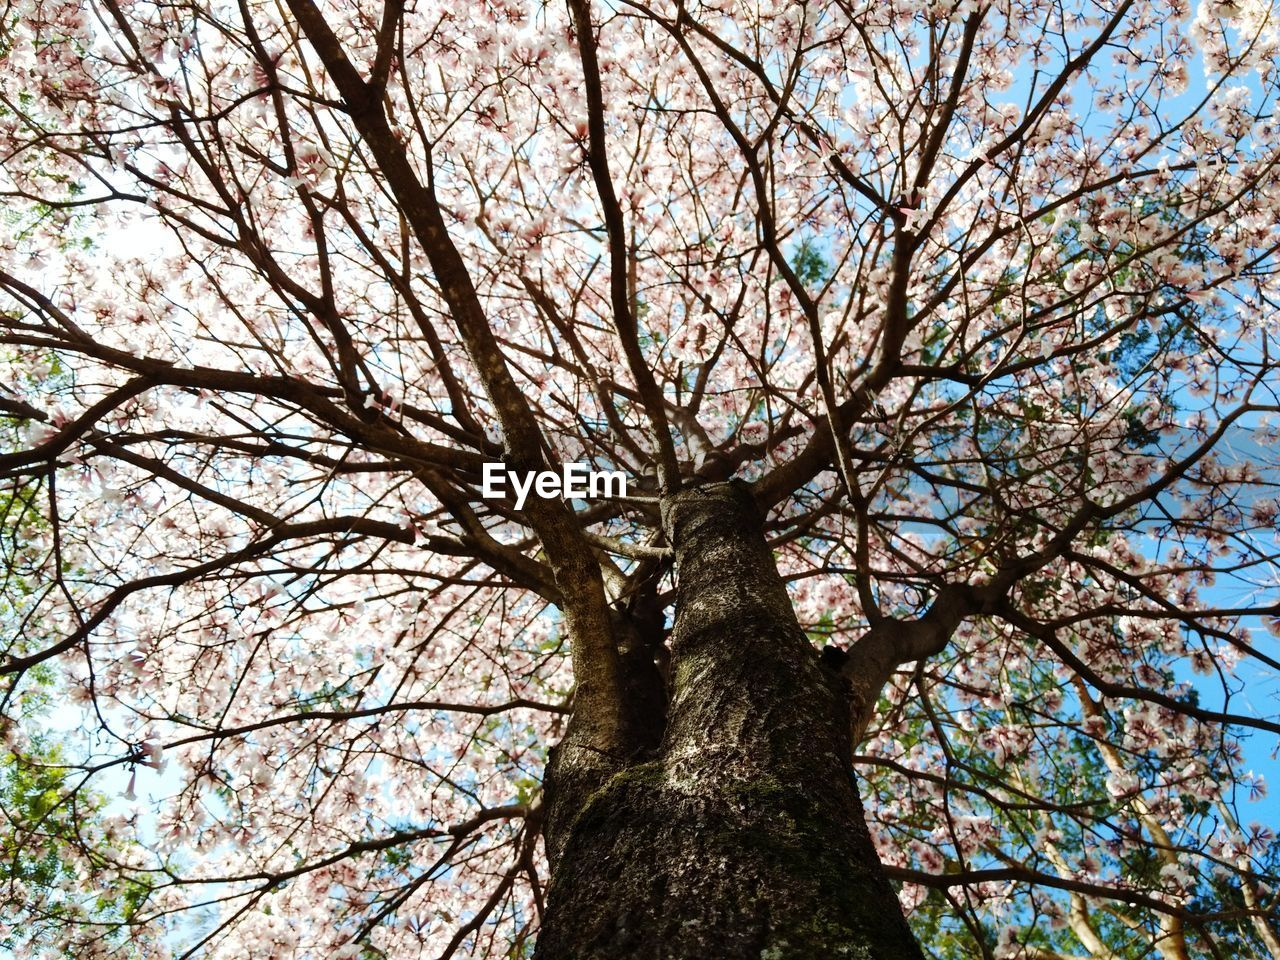 tree, branch, low angle view, nature, tree trunk, outdoors, day, growth, bare tree, no people, beauty in nature, sky, forest